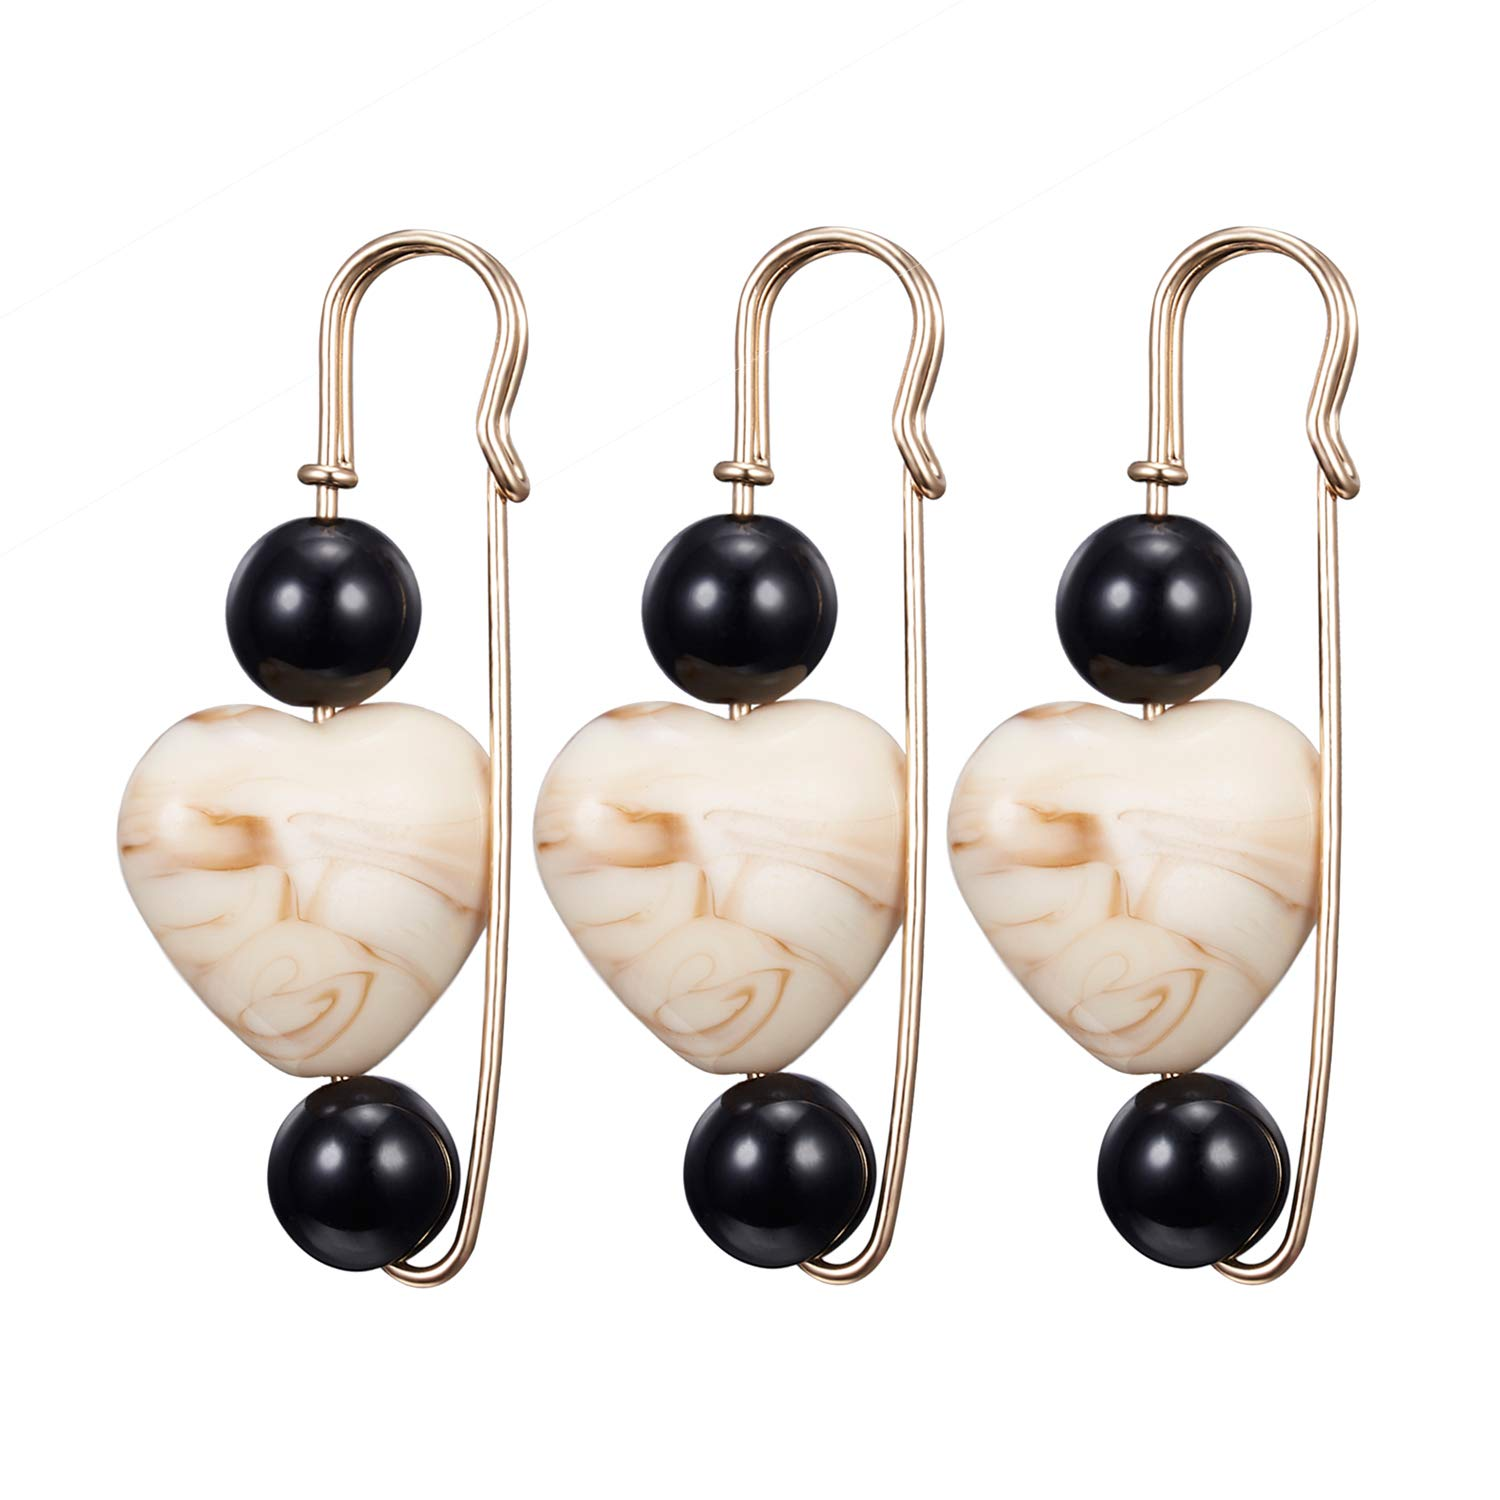 RINHOO FRIENDSHIP Pearl Crystal Brooches Pins Beads Safety Clips Coat Hat Shawl Silk Scarf Dress Sweater Knitted Jewelry Women Girls (Heart Bead)